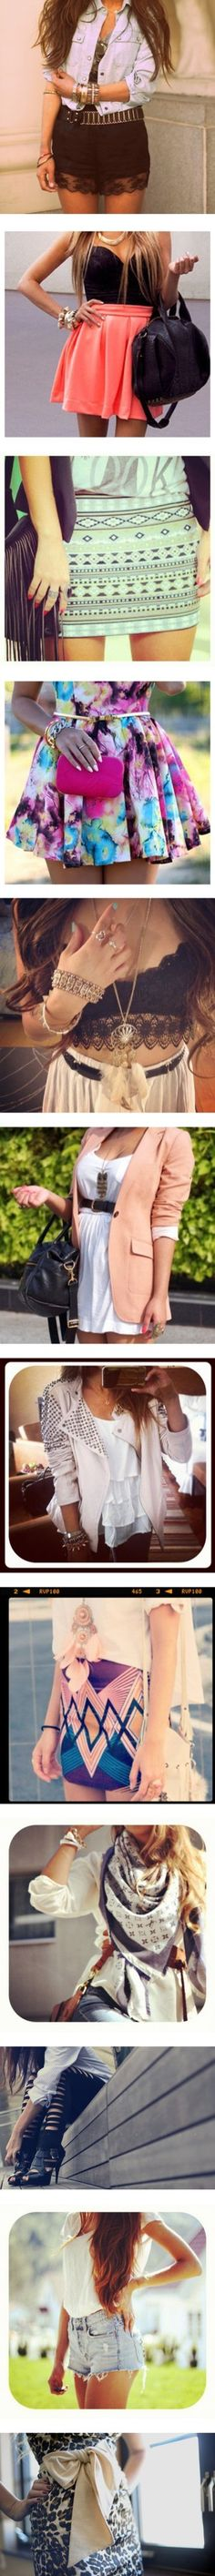 """""""Lookbook♥(3)"""" by lauryngrace ❤ liked on Polyvore"""